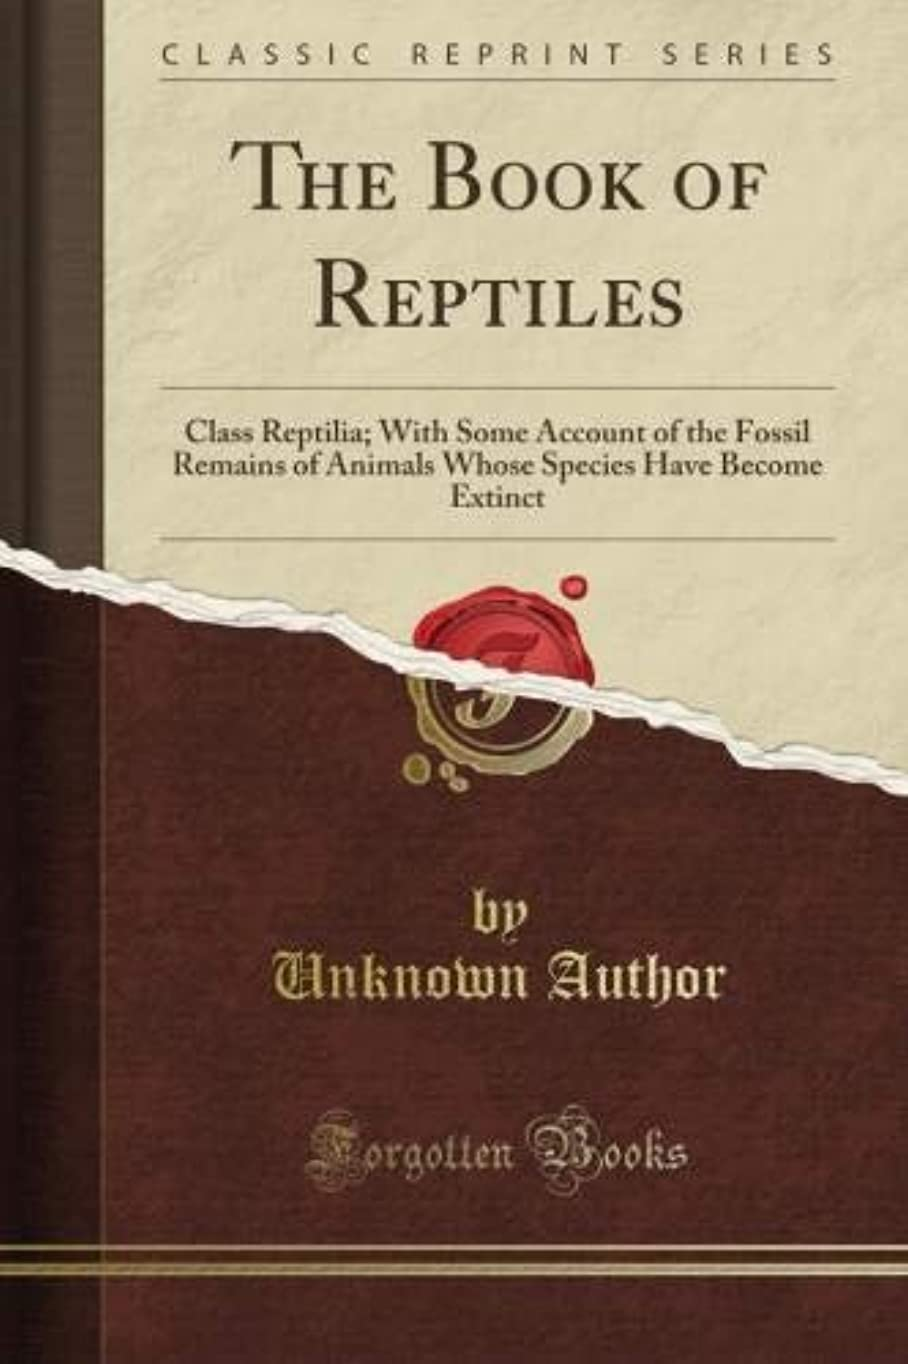 タクシー意図する月曜The Book of Reptiles: Class Reptilia; With Some Account of the Fossil Remains of Animals Whose Species Have Become Extinct (Classic Reprint)